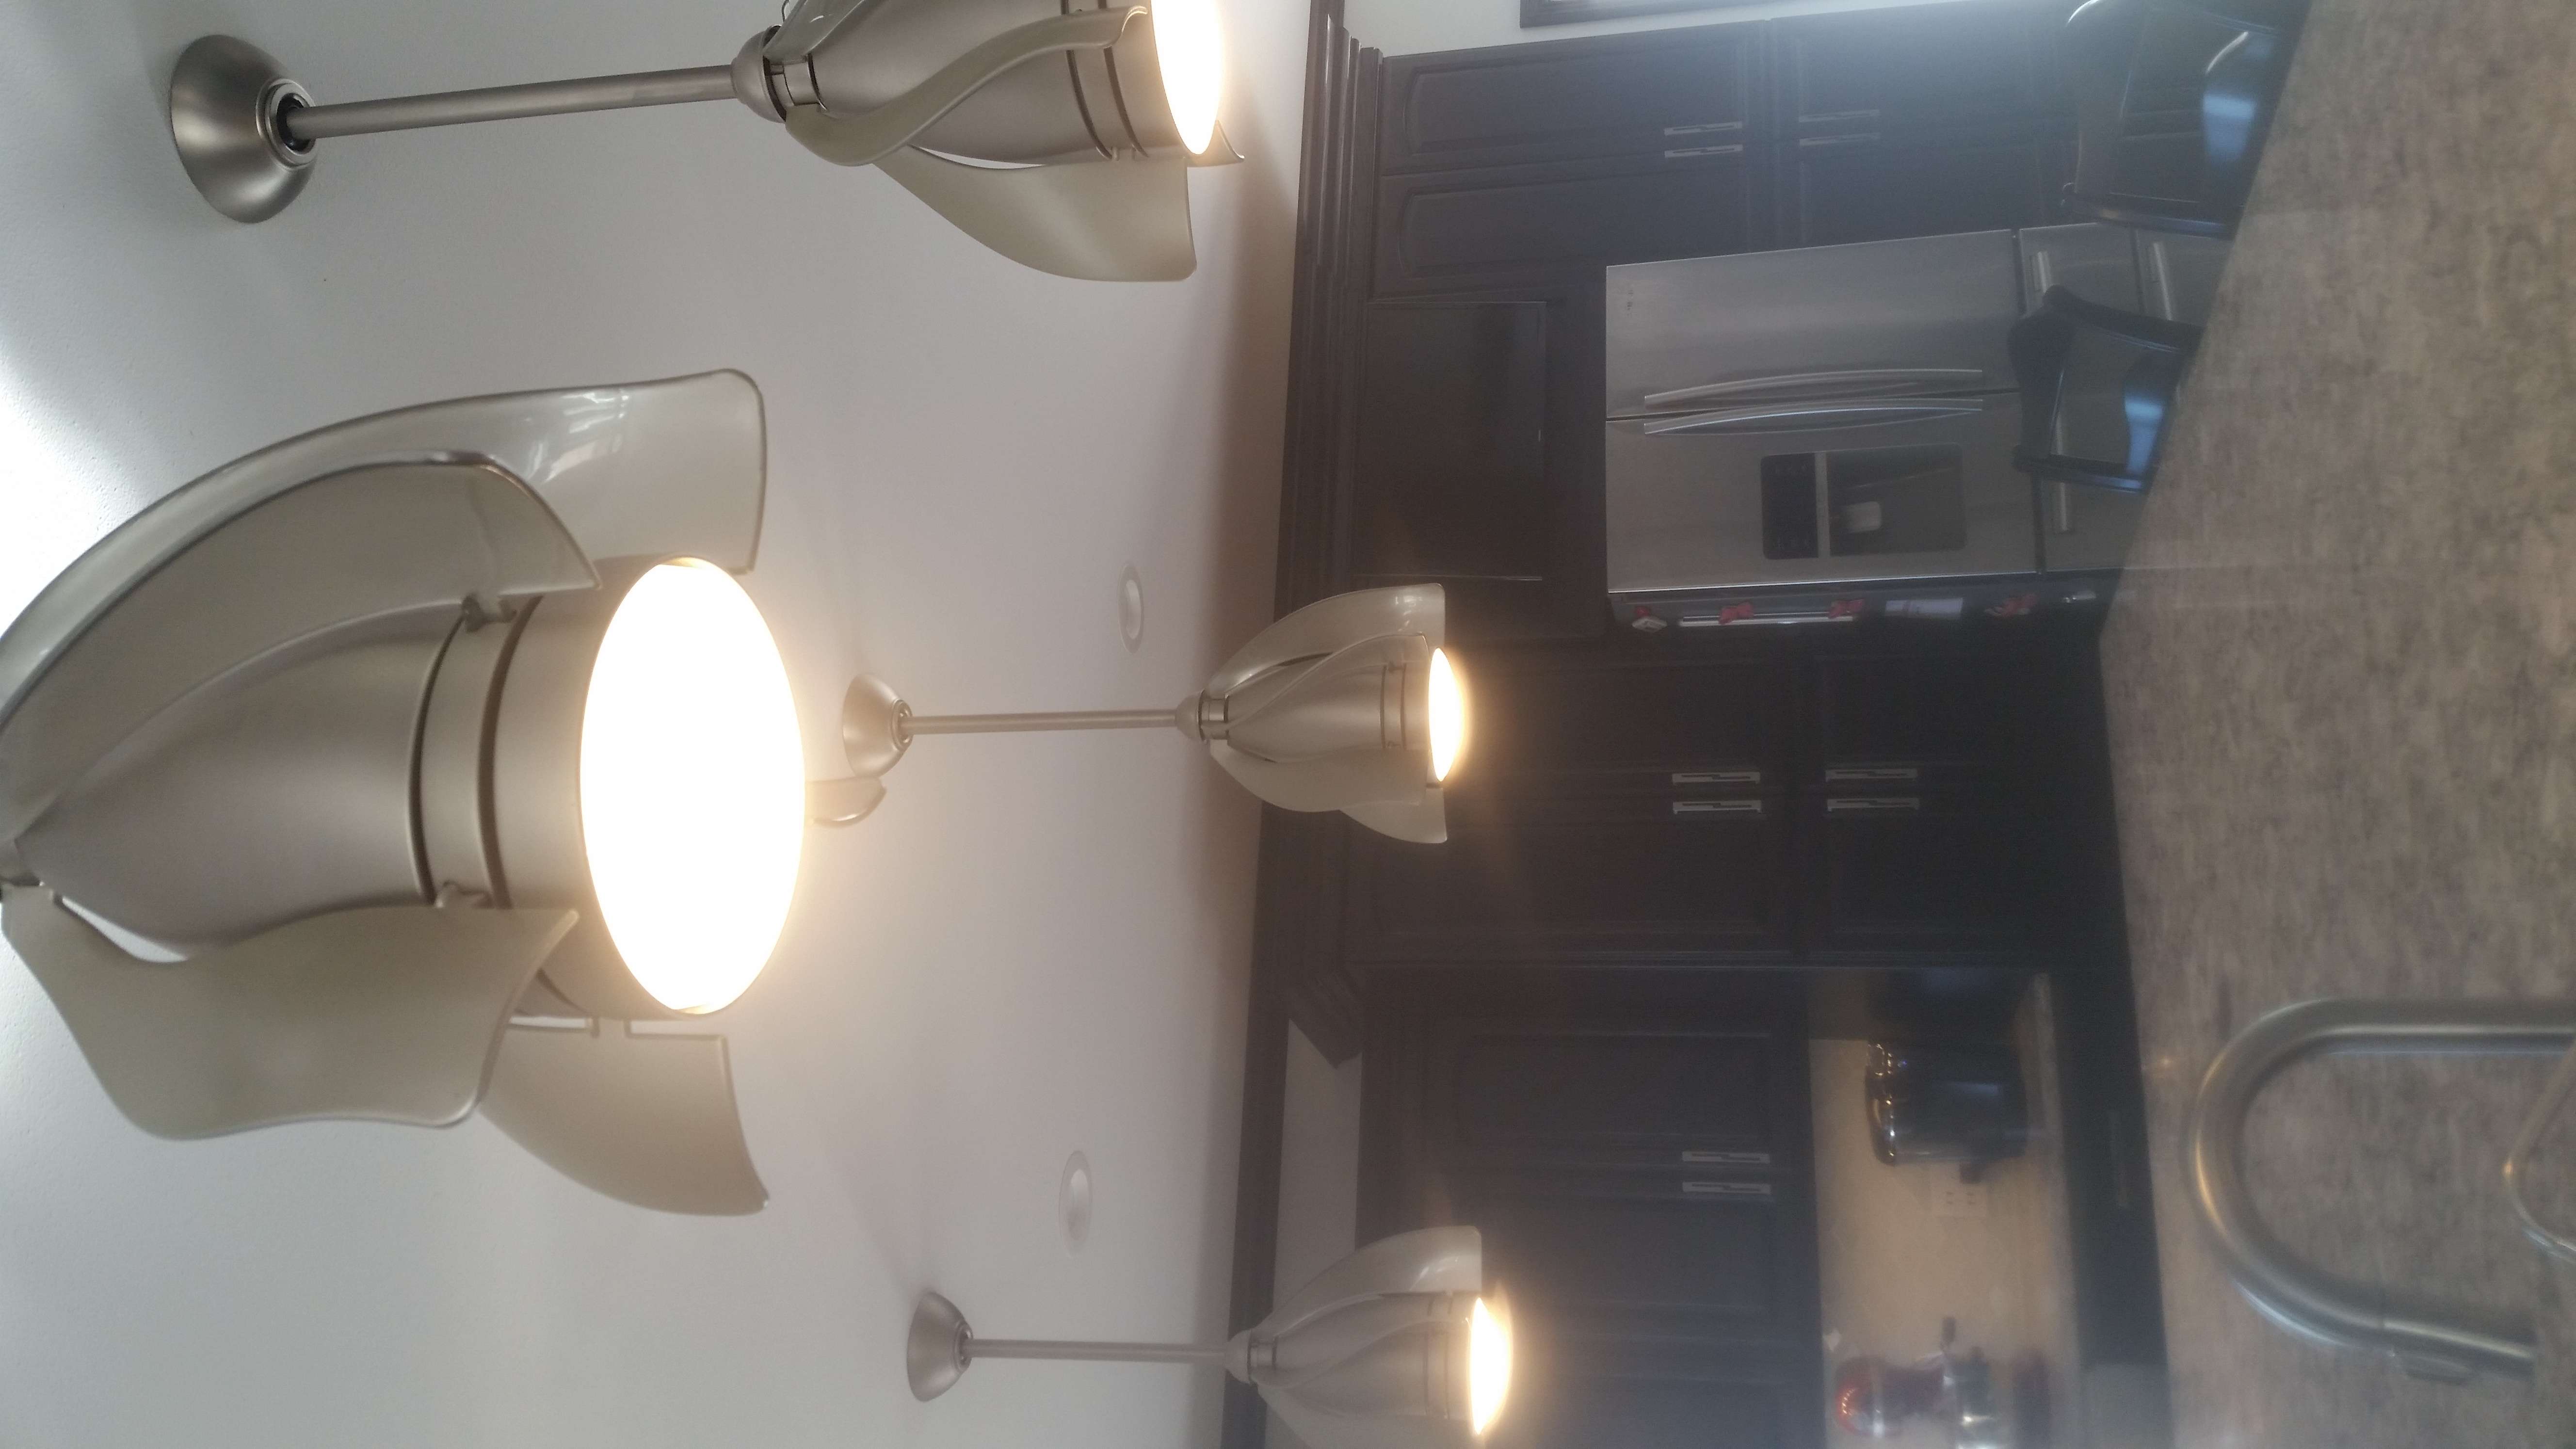 Pendant fan lights